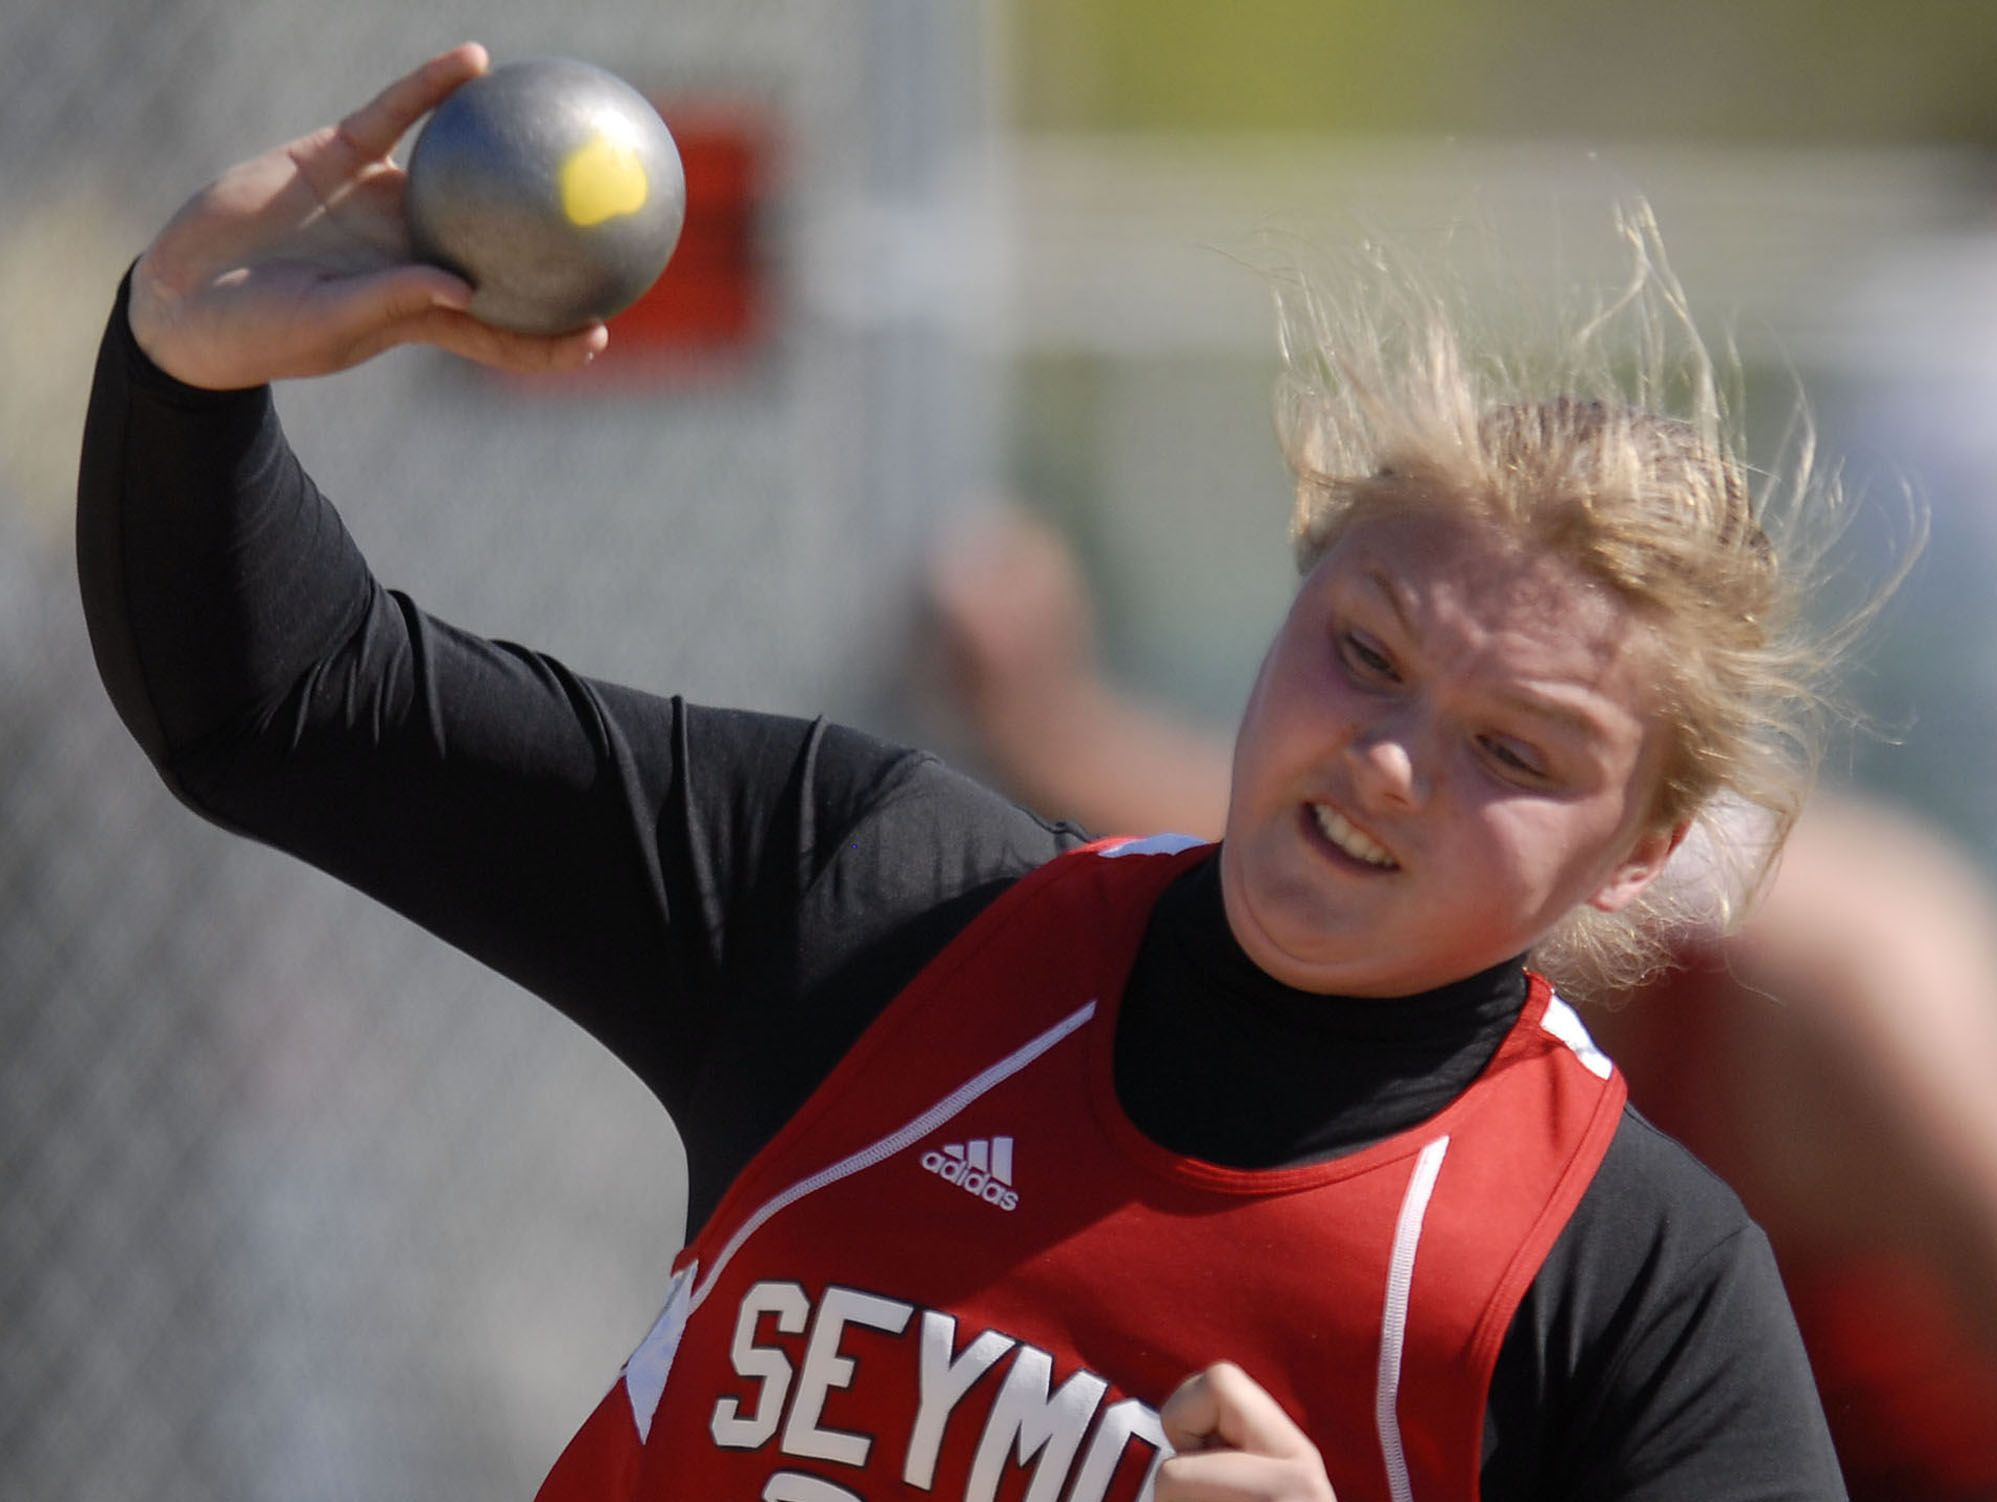 Jessica Maroszek, pictured in 2008, broke the state record in the shot put with a throw of 49 feet, 4¼ inches in 2010 to win the WIAA Division 1 state championship.